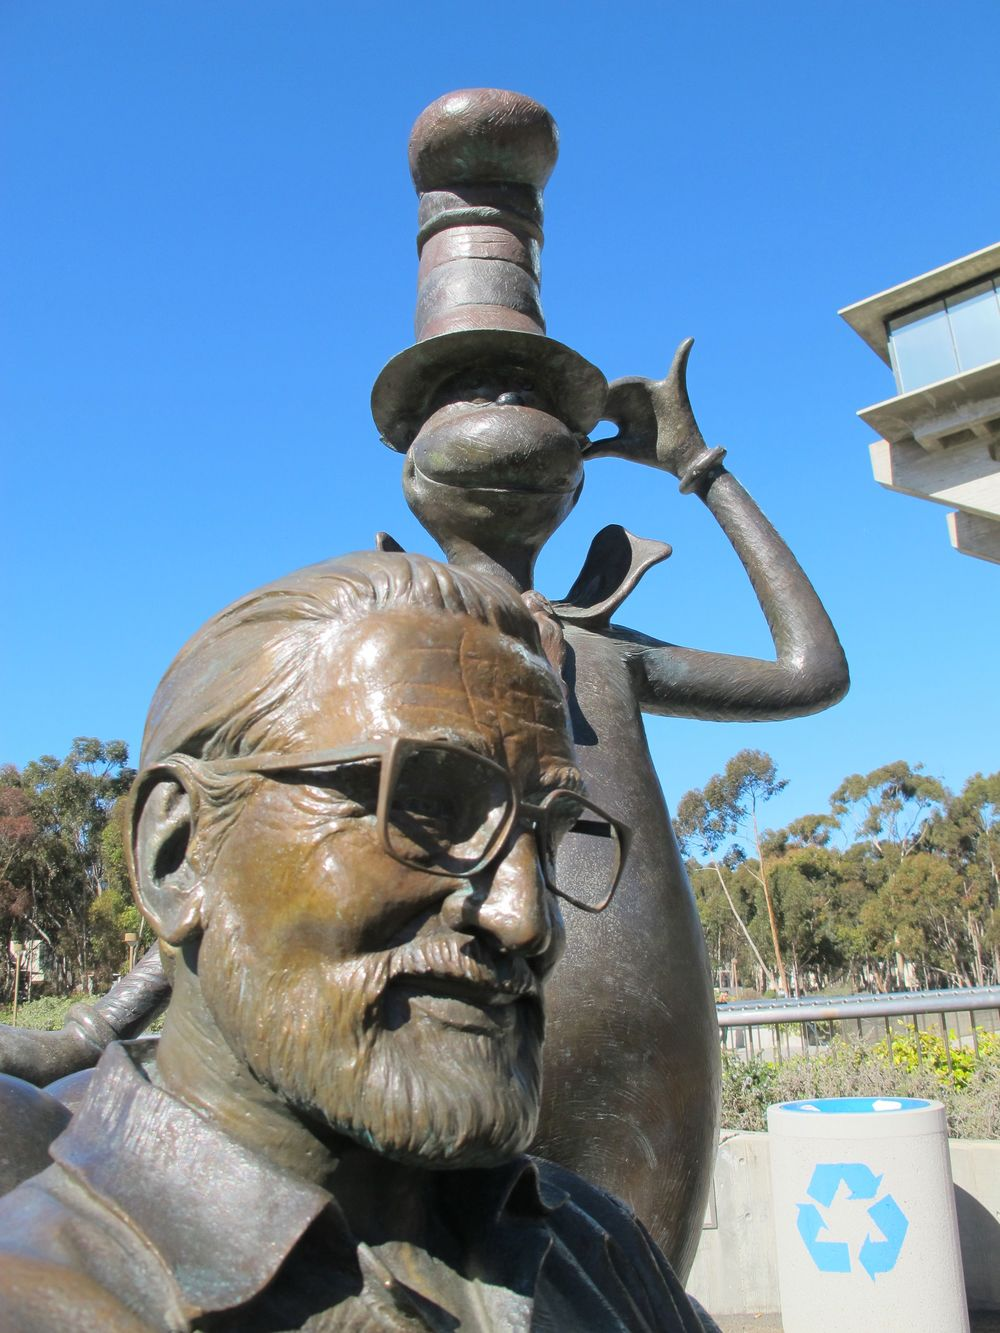 The UCSD's Geisel Library is named after Theodor Geisel, aka Dr. Seuss, who is honored with this statue.